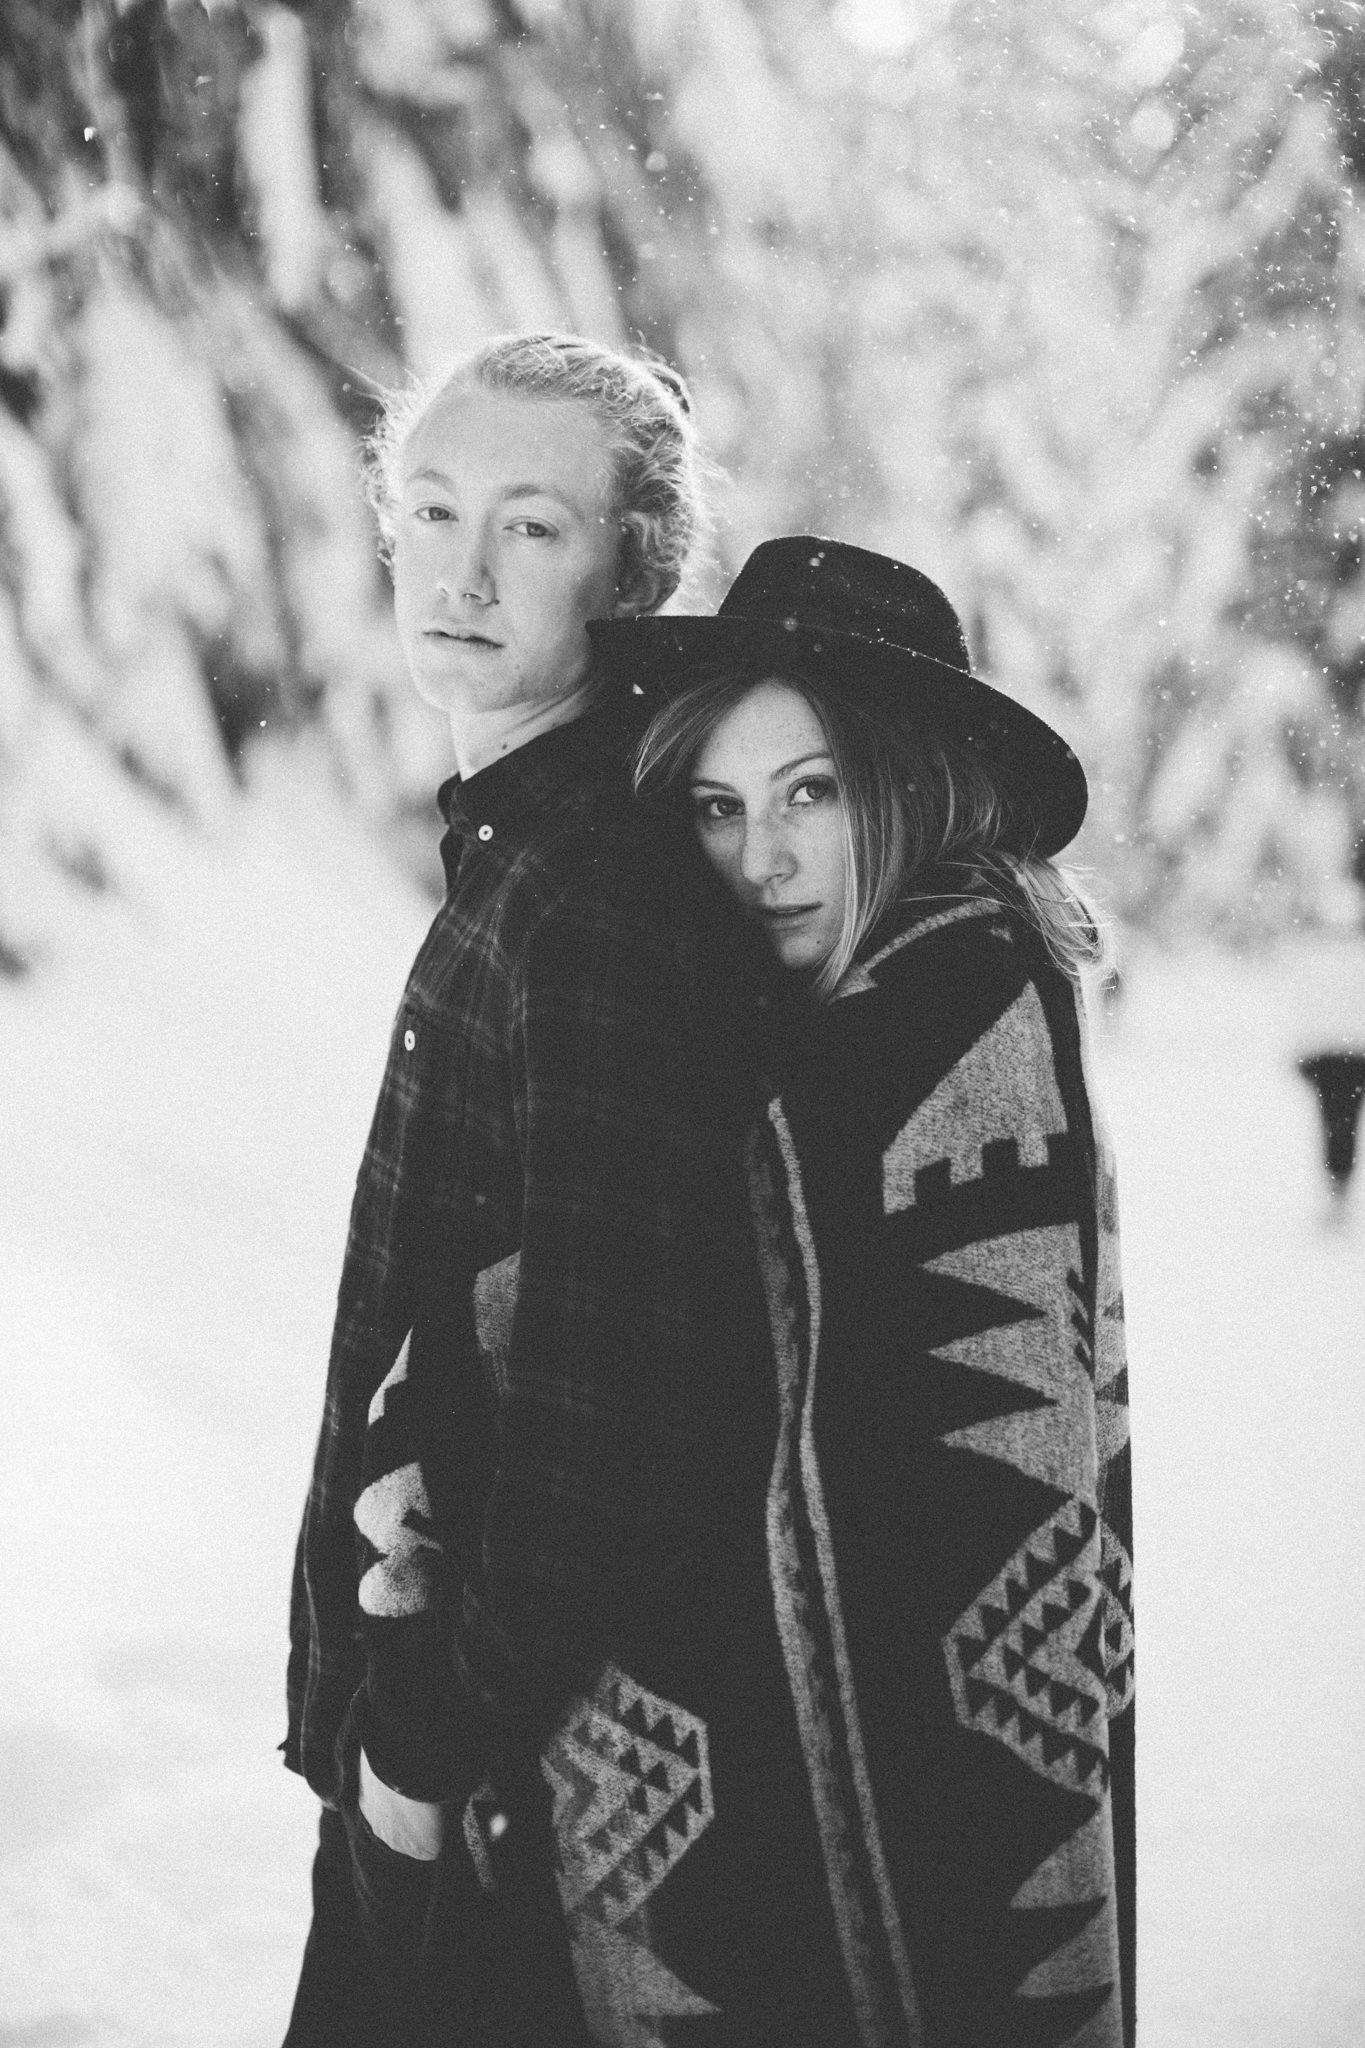 Winter portraits: Snowy Couples Engagement Session Seattle Washington